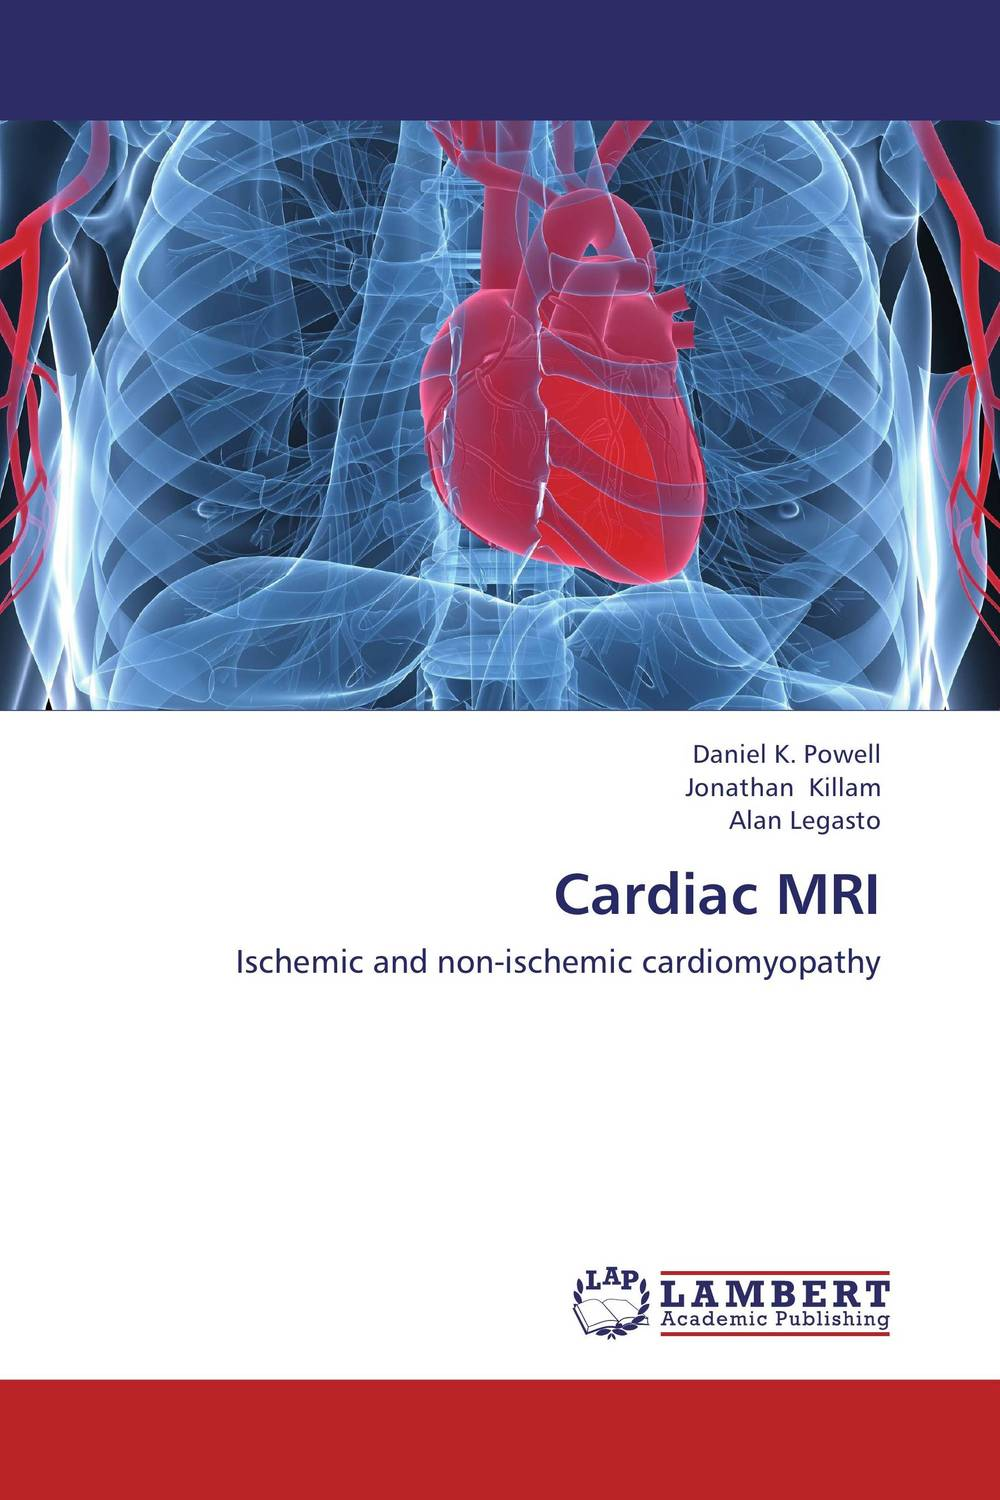 Cardiac MRI effect of ischemic heart disease on the audiovestibular functions